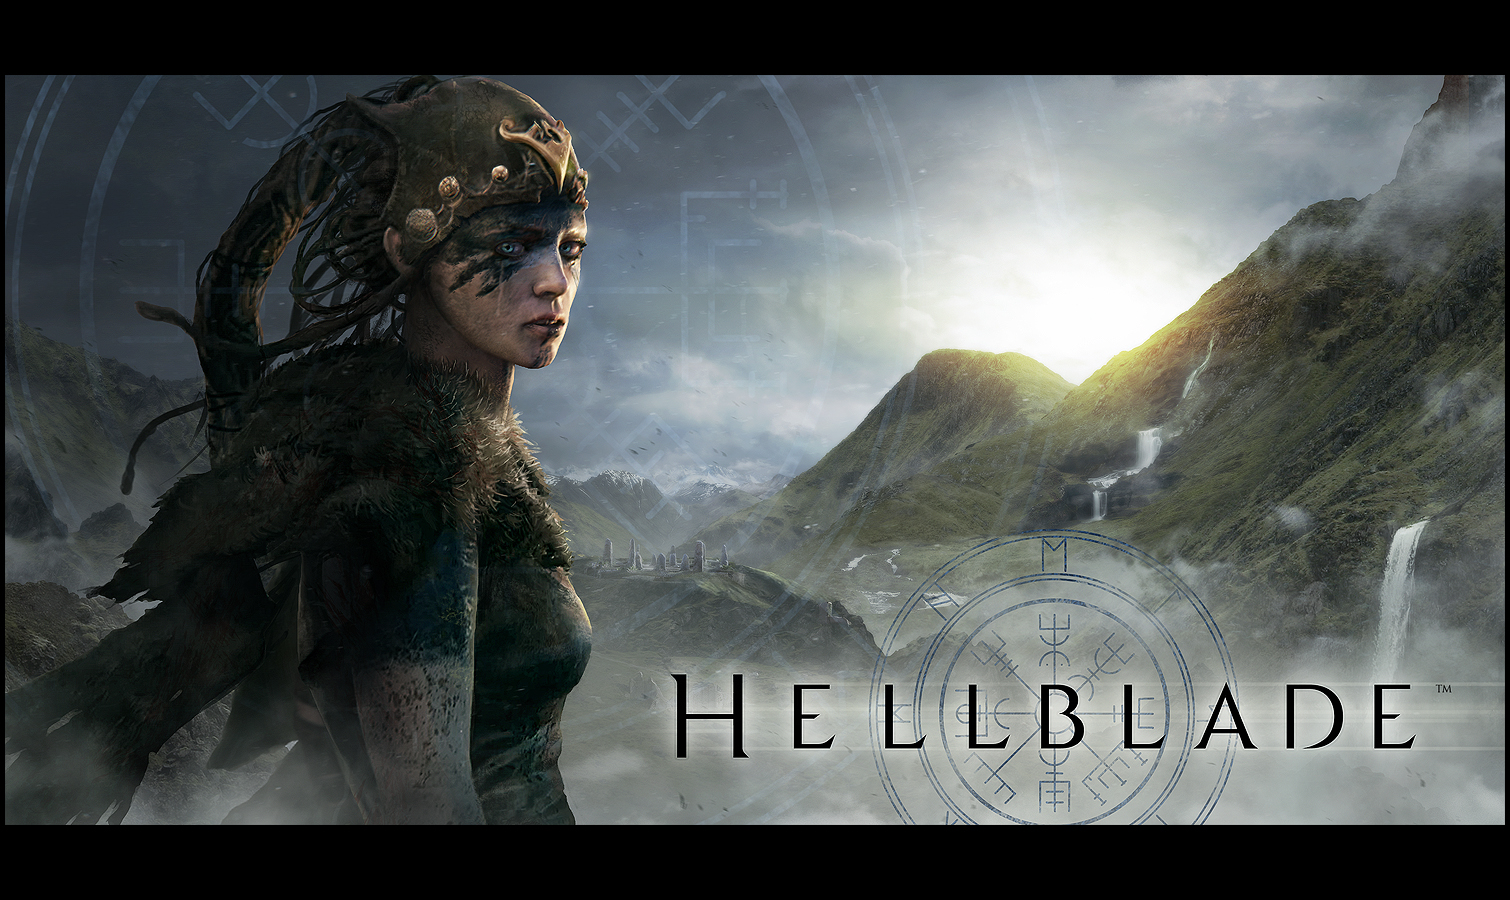 Devil May Cry Wallpaper Hd Hellblade Is Coming For Pc After Playstation 4 S Timed